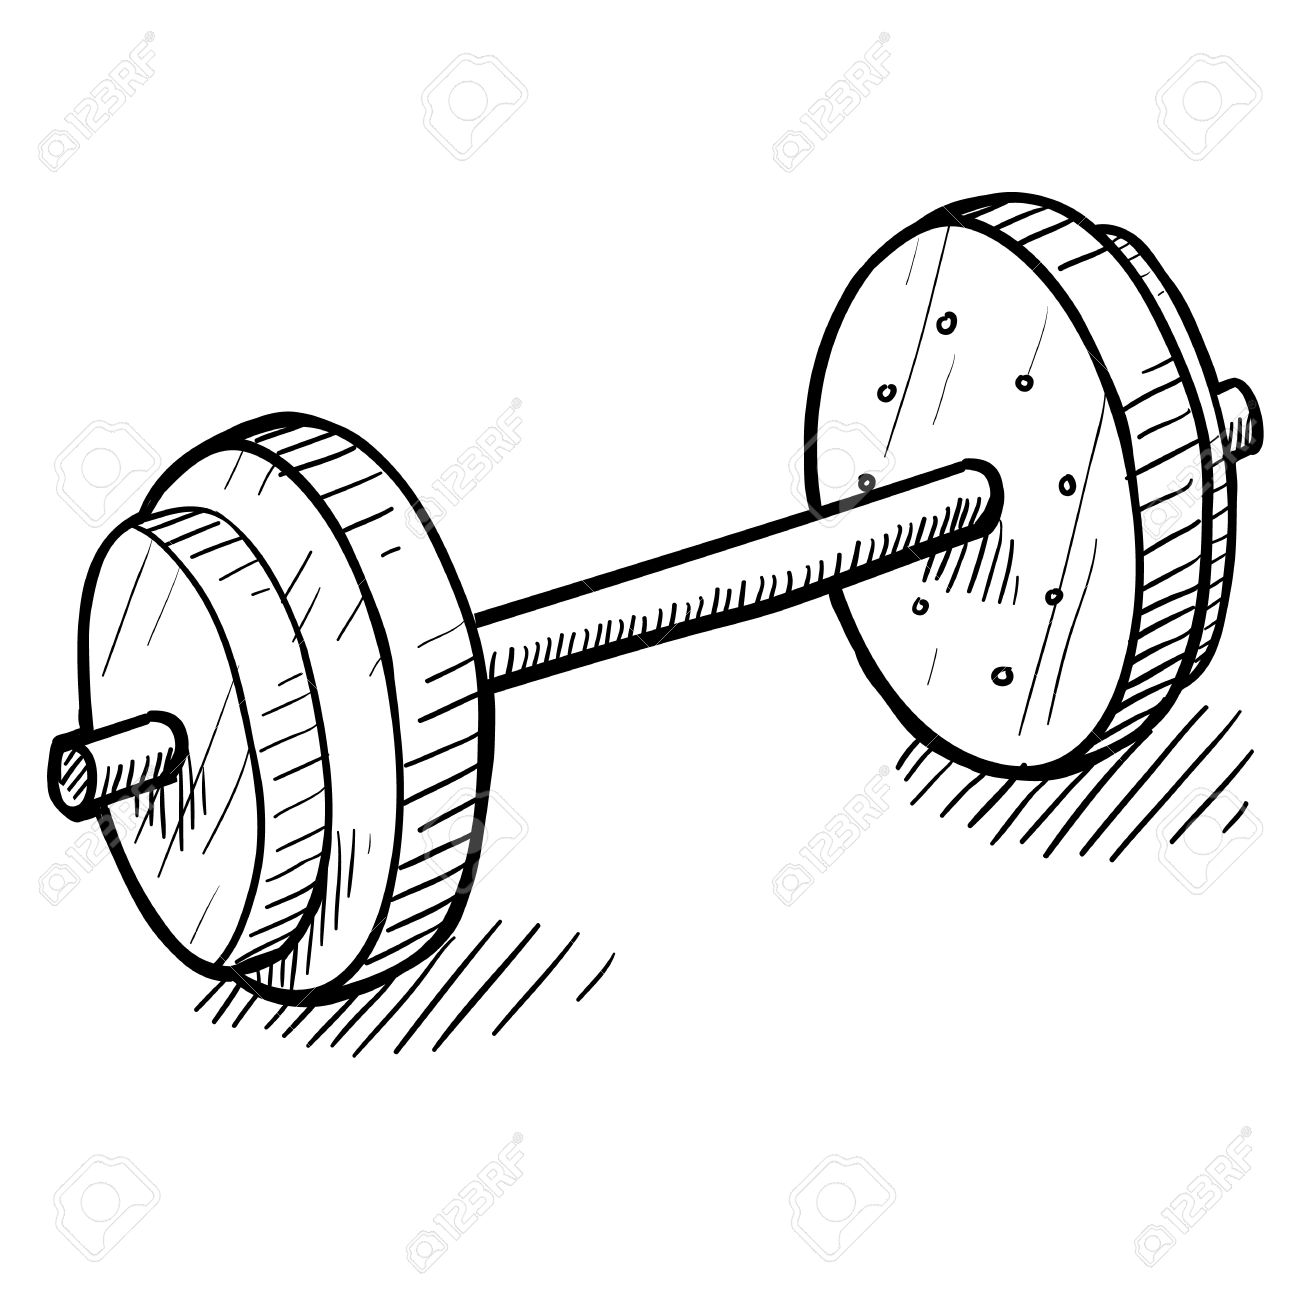 Image result for strength training doodle image